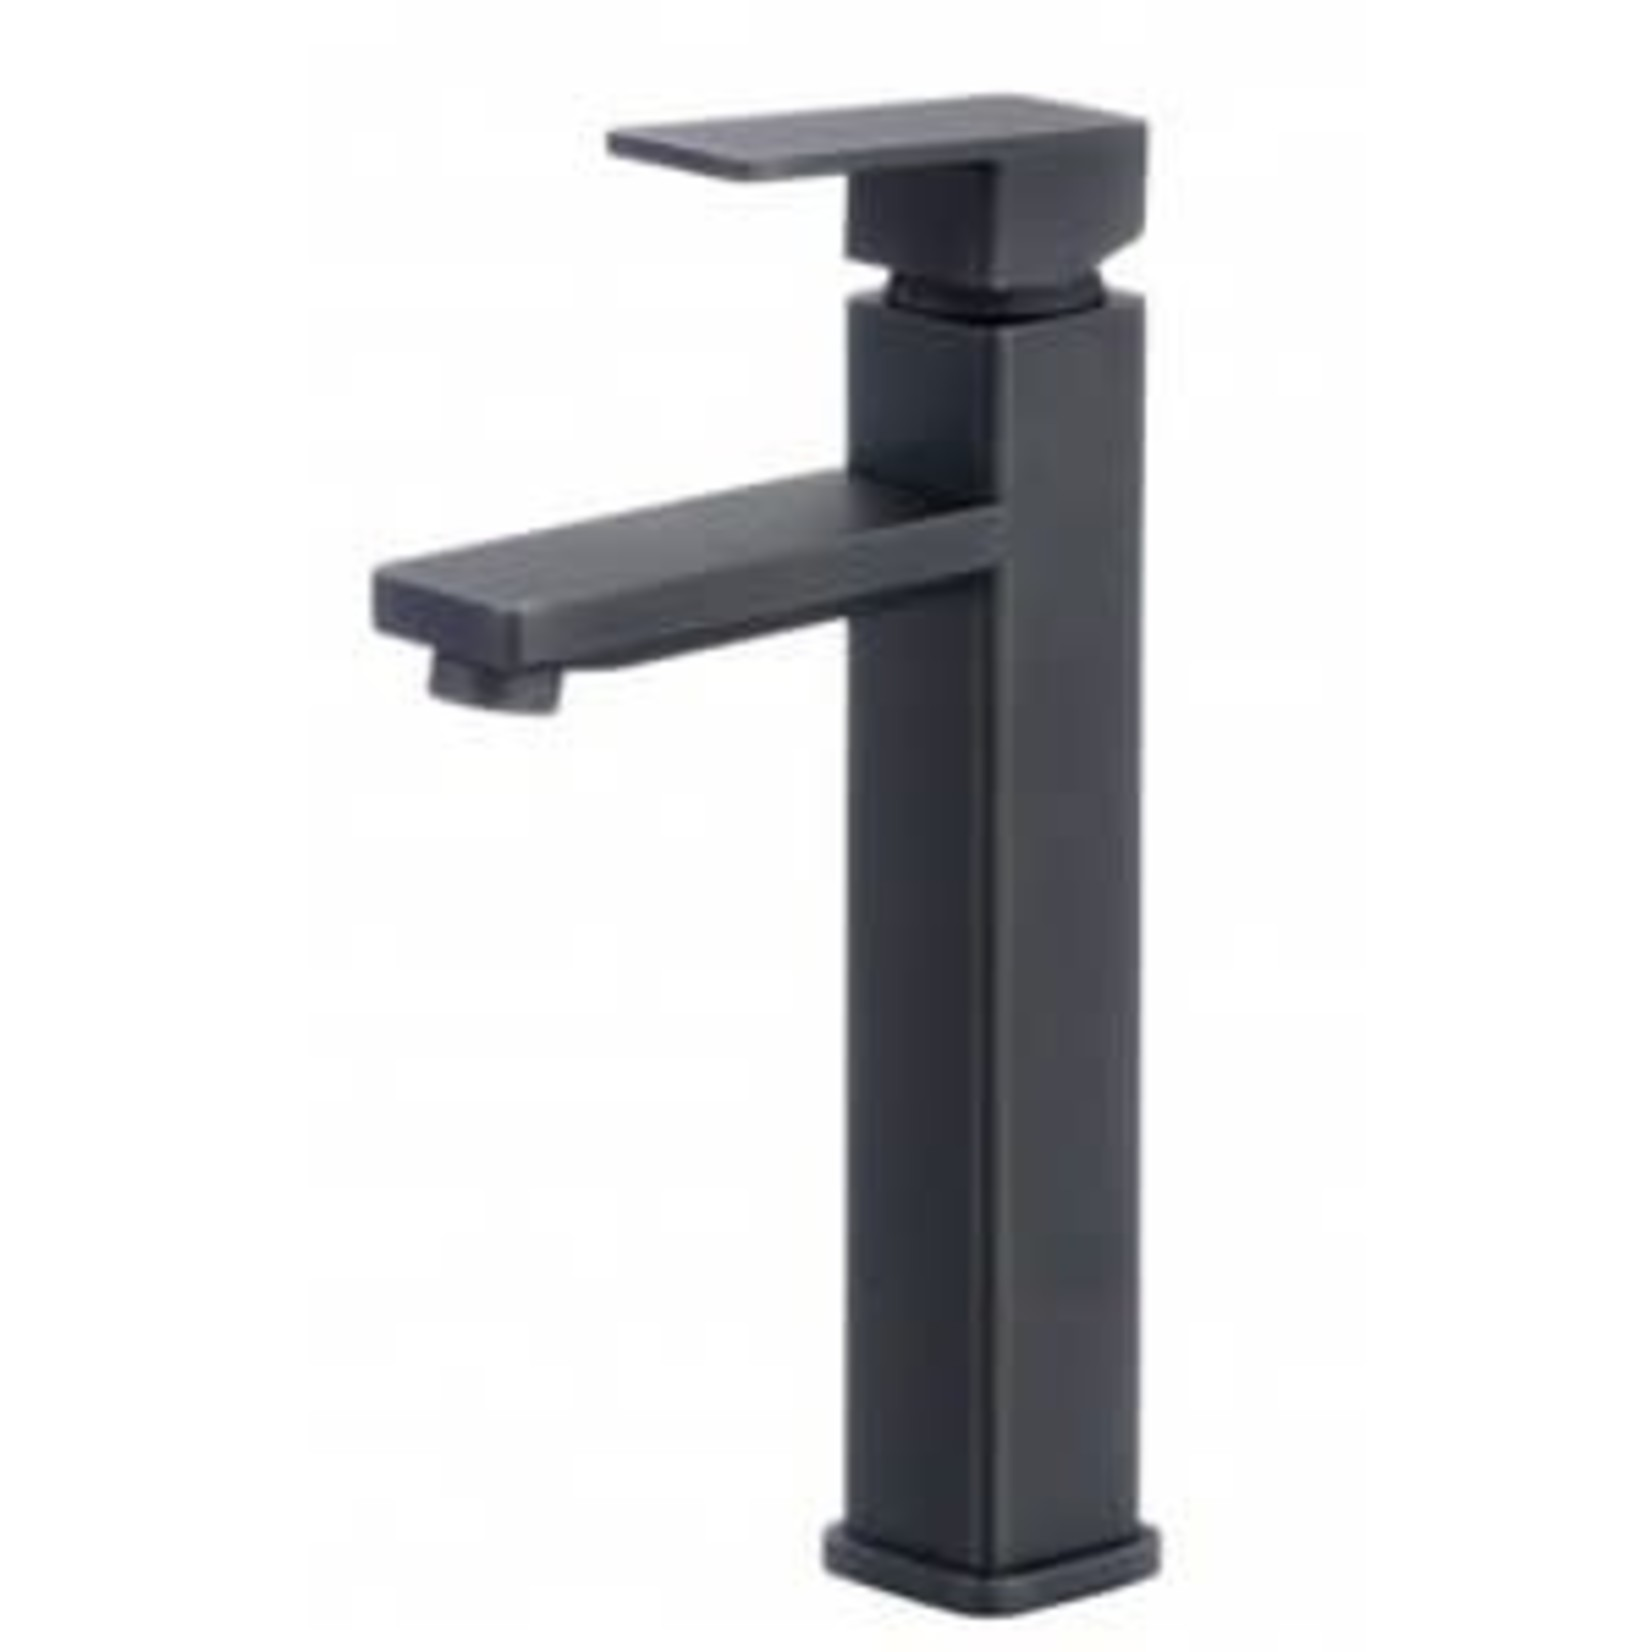 Black basin tap NRD-B23102-MB